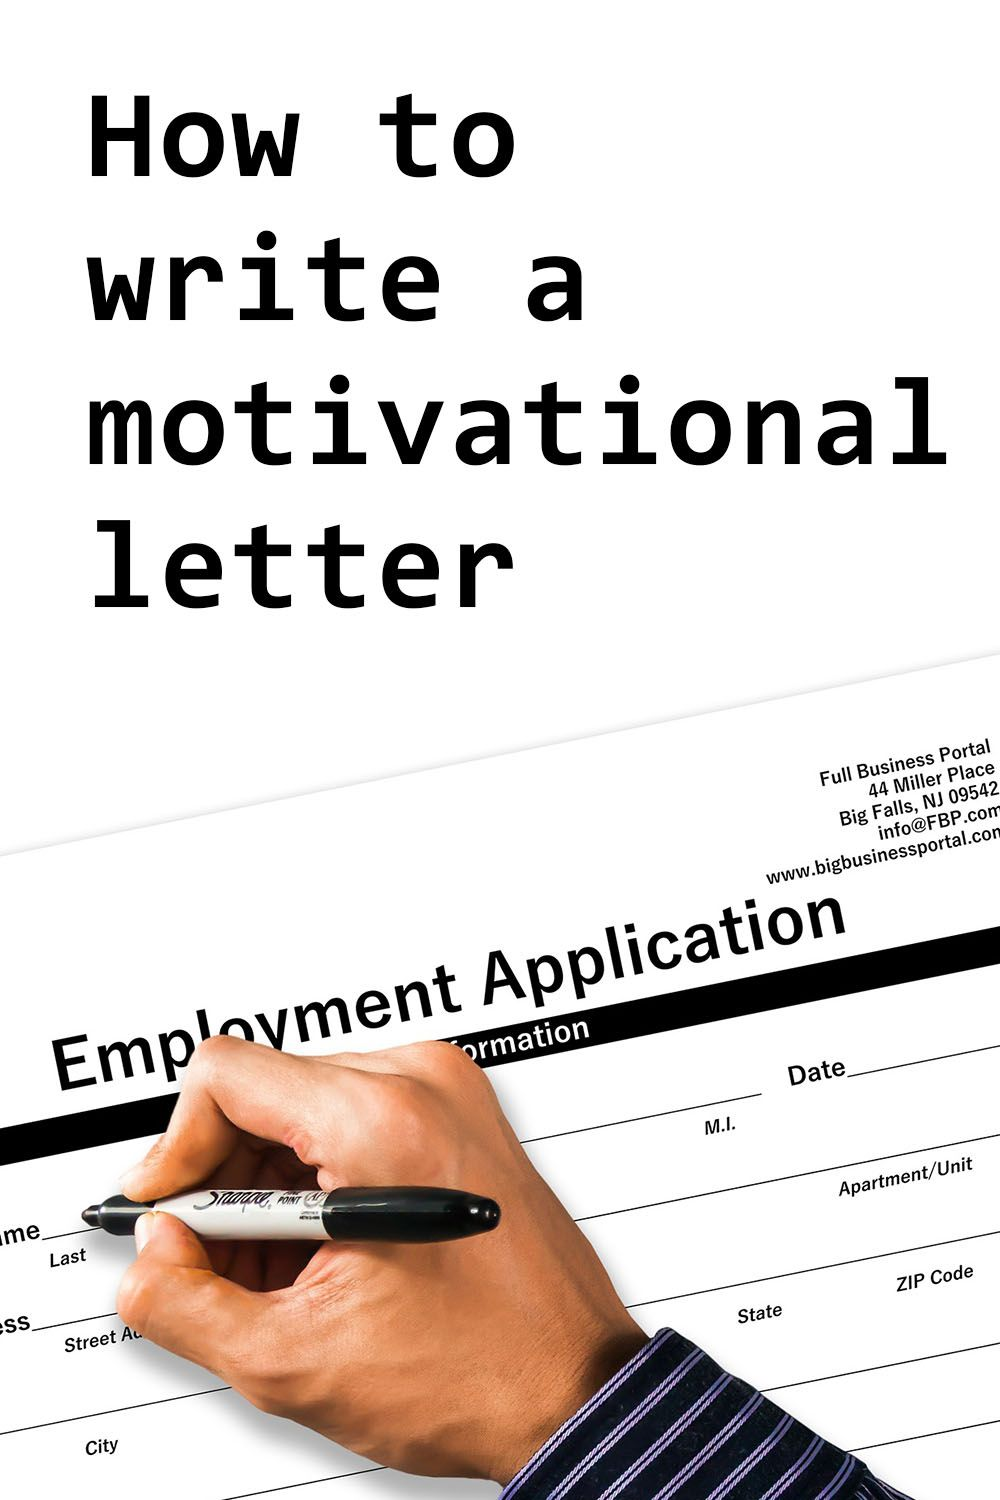 Join the training for FREE and learn how to write your